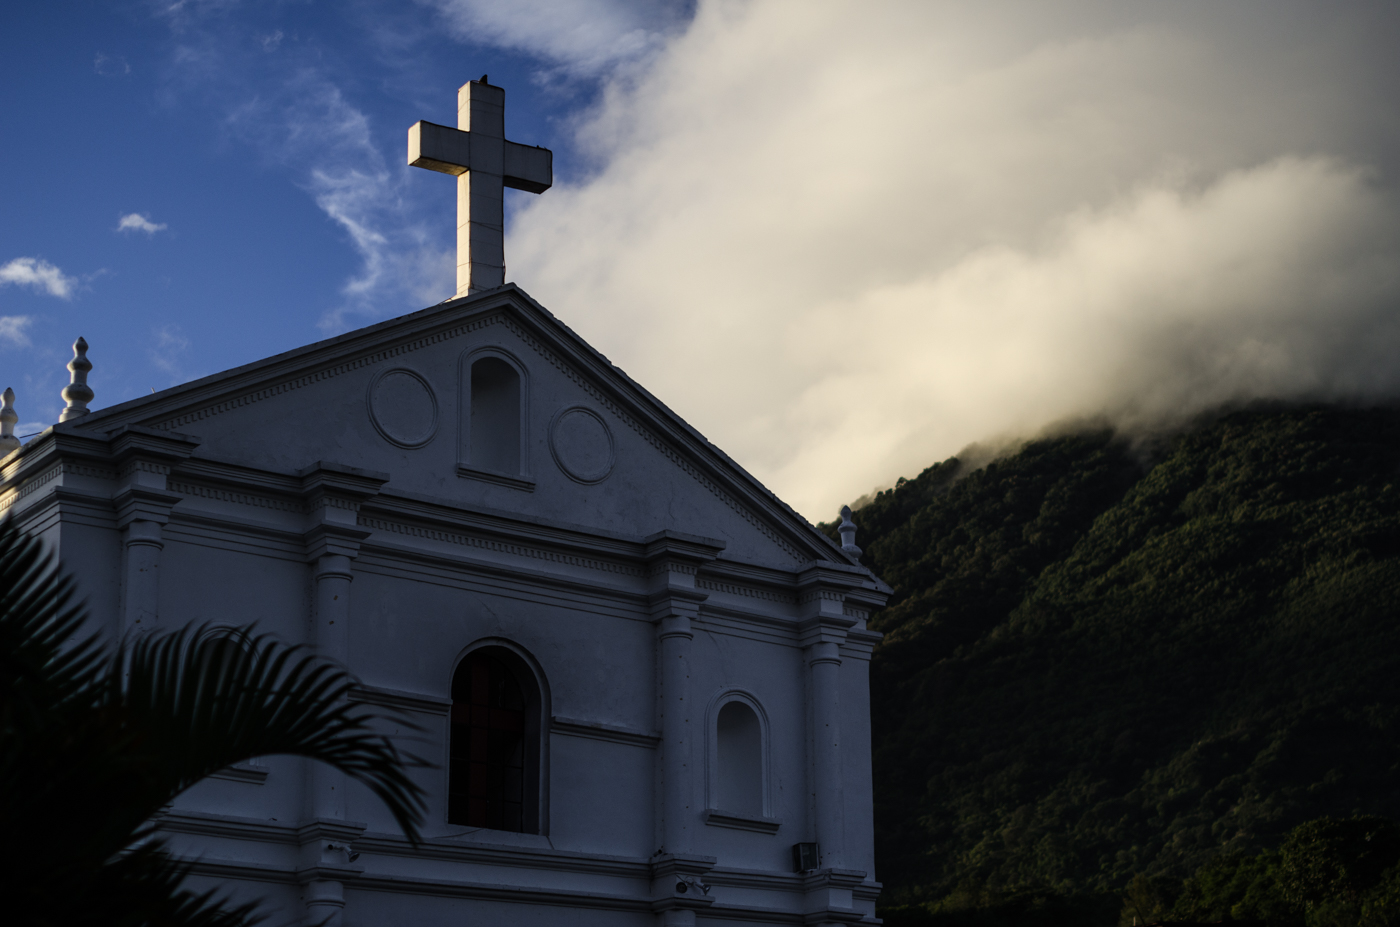 Clouds spill over the side of the mountain towards the Catholic Church of San Pedro.